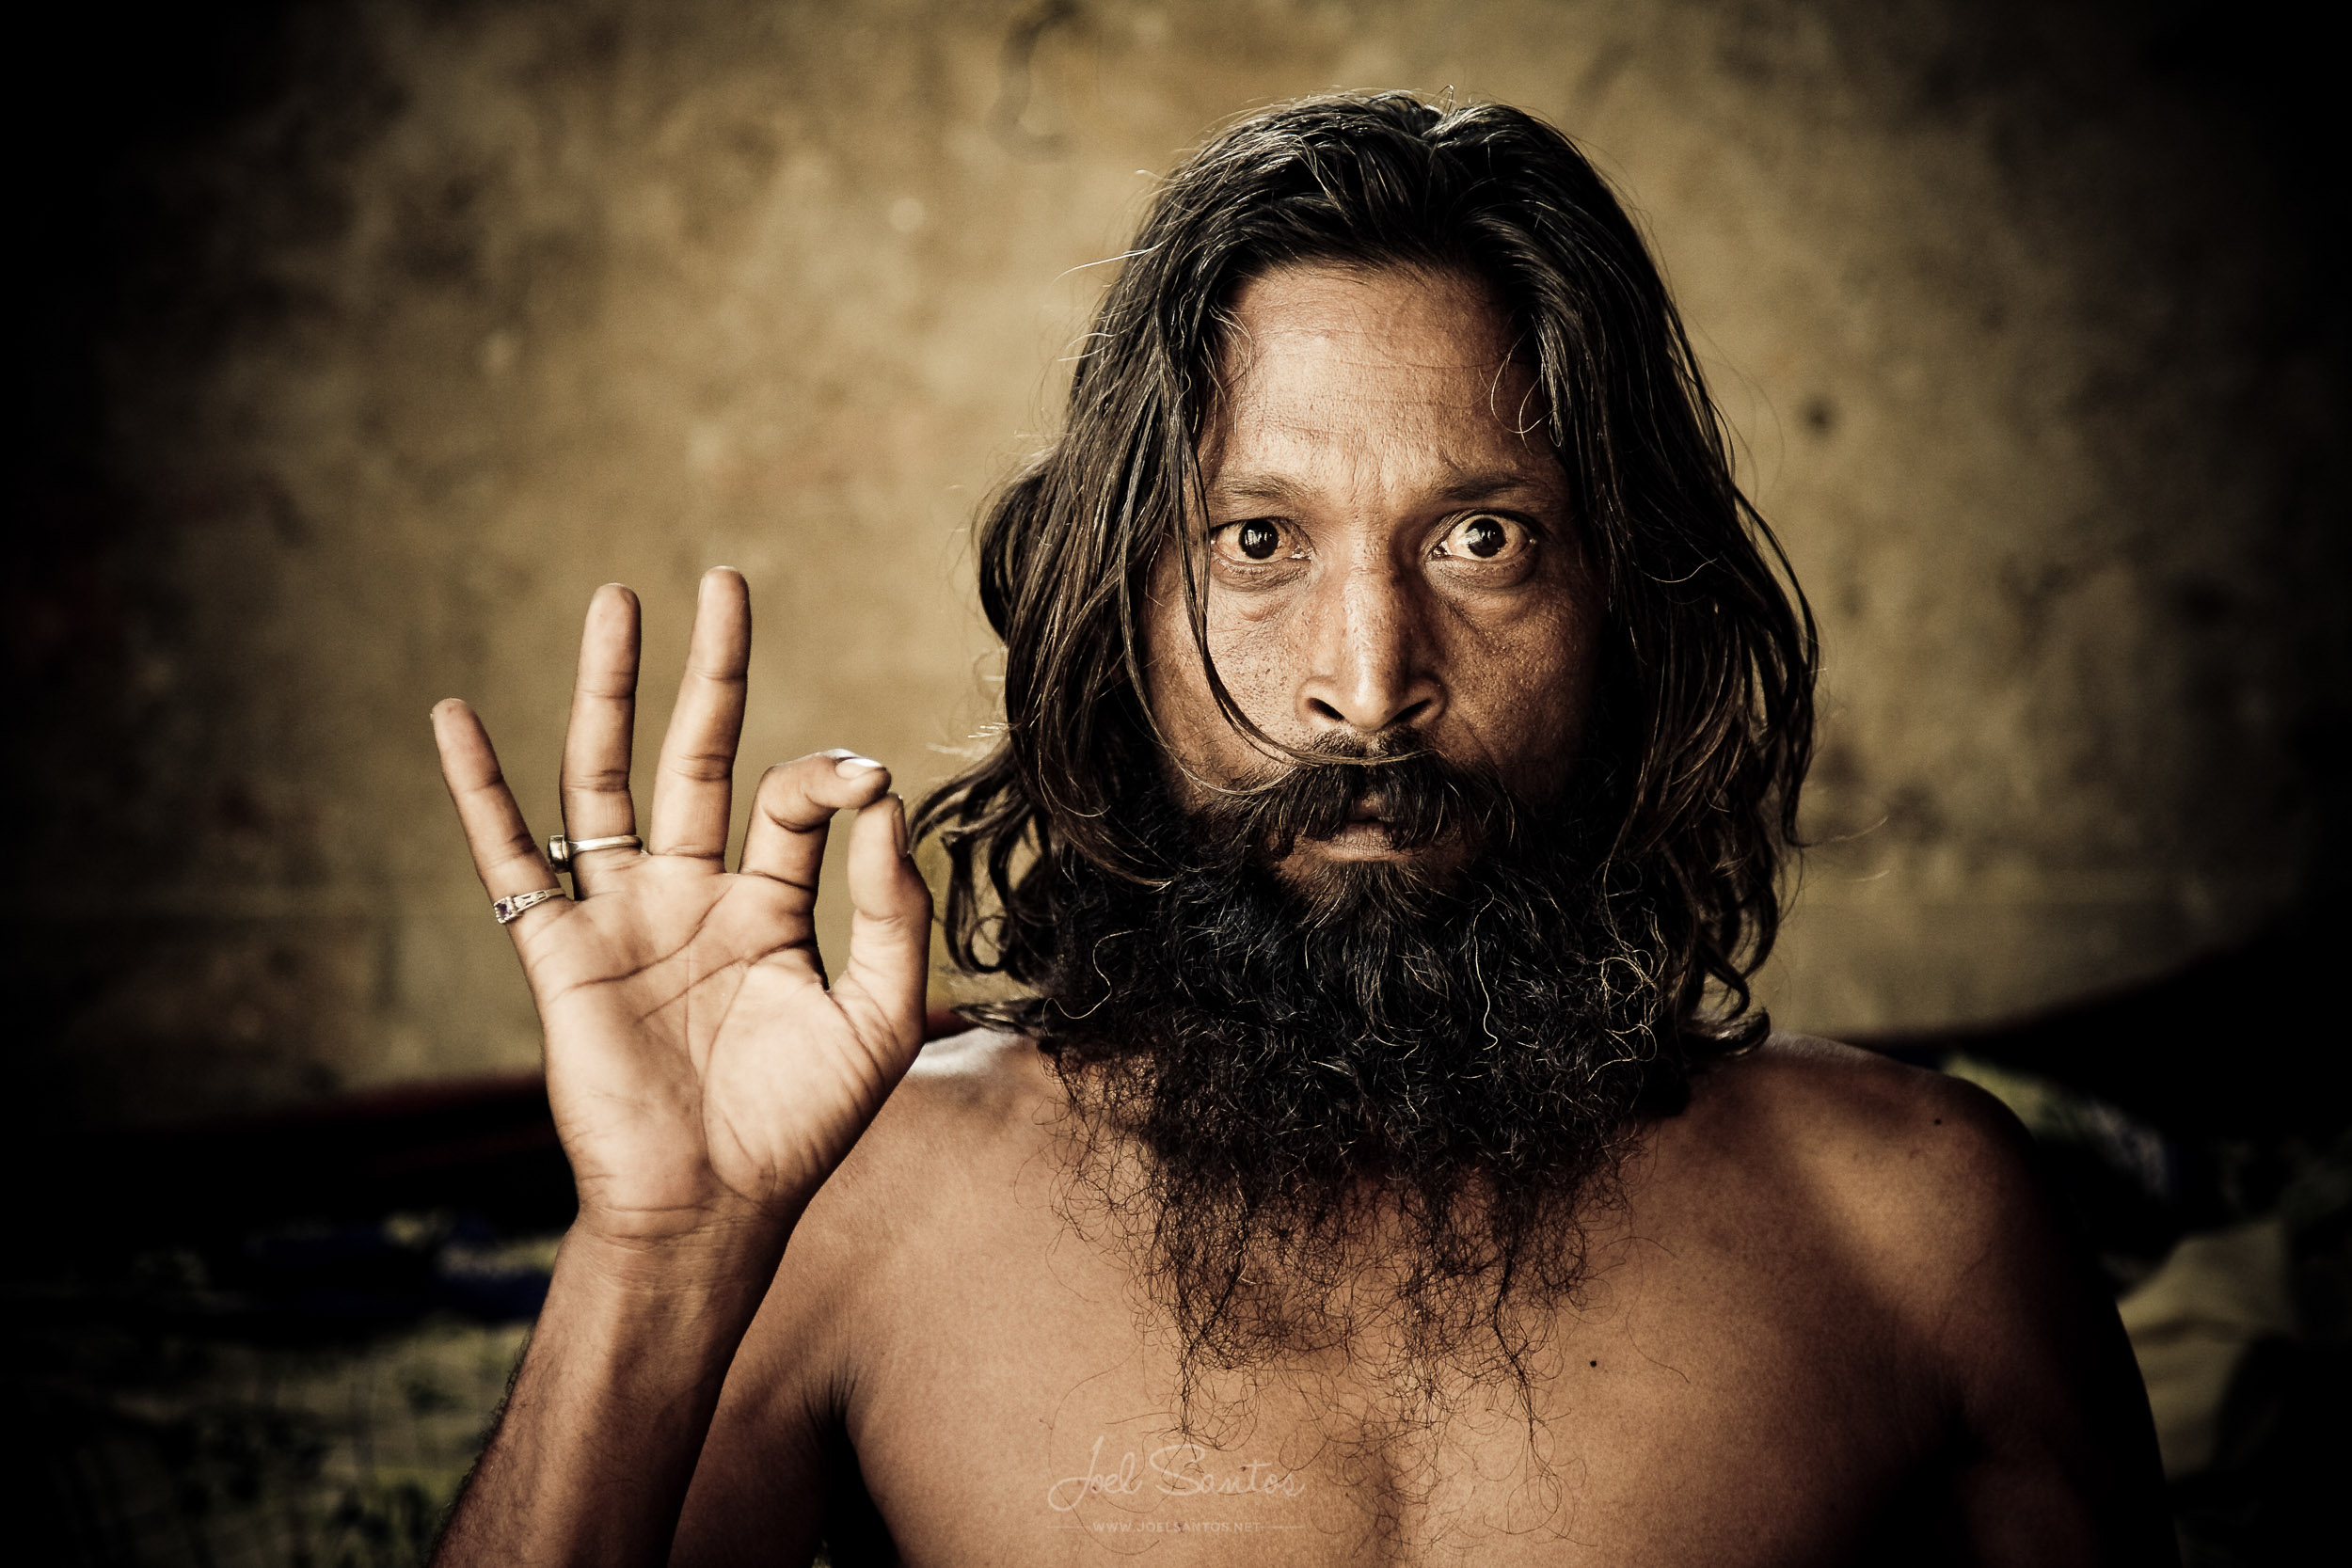 Sadhu (Holy man), Jaipur, India